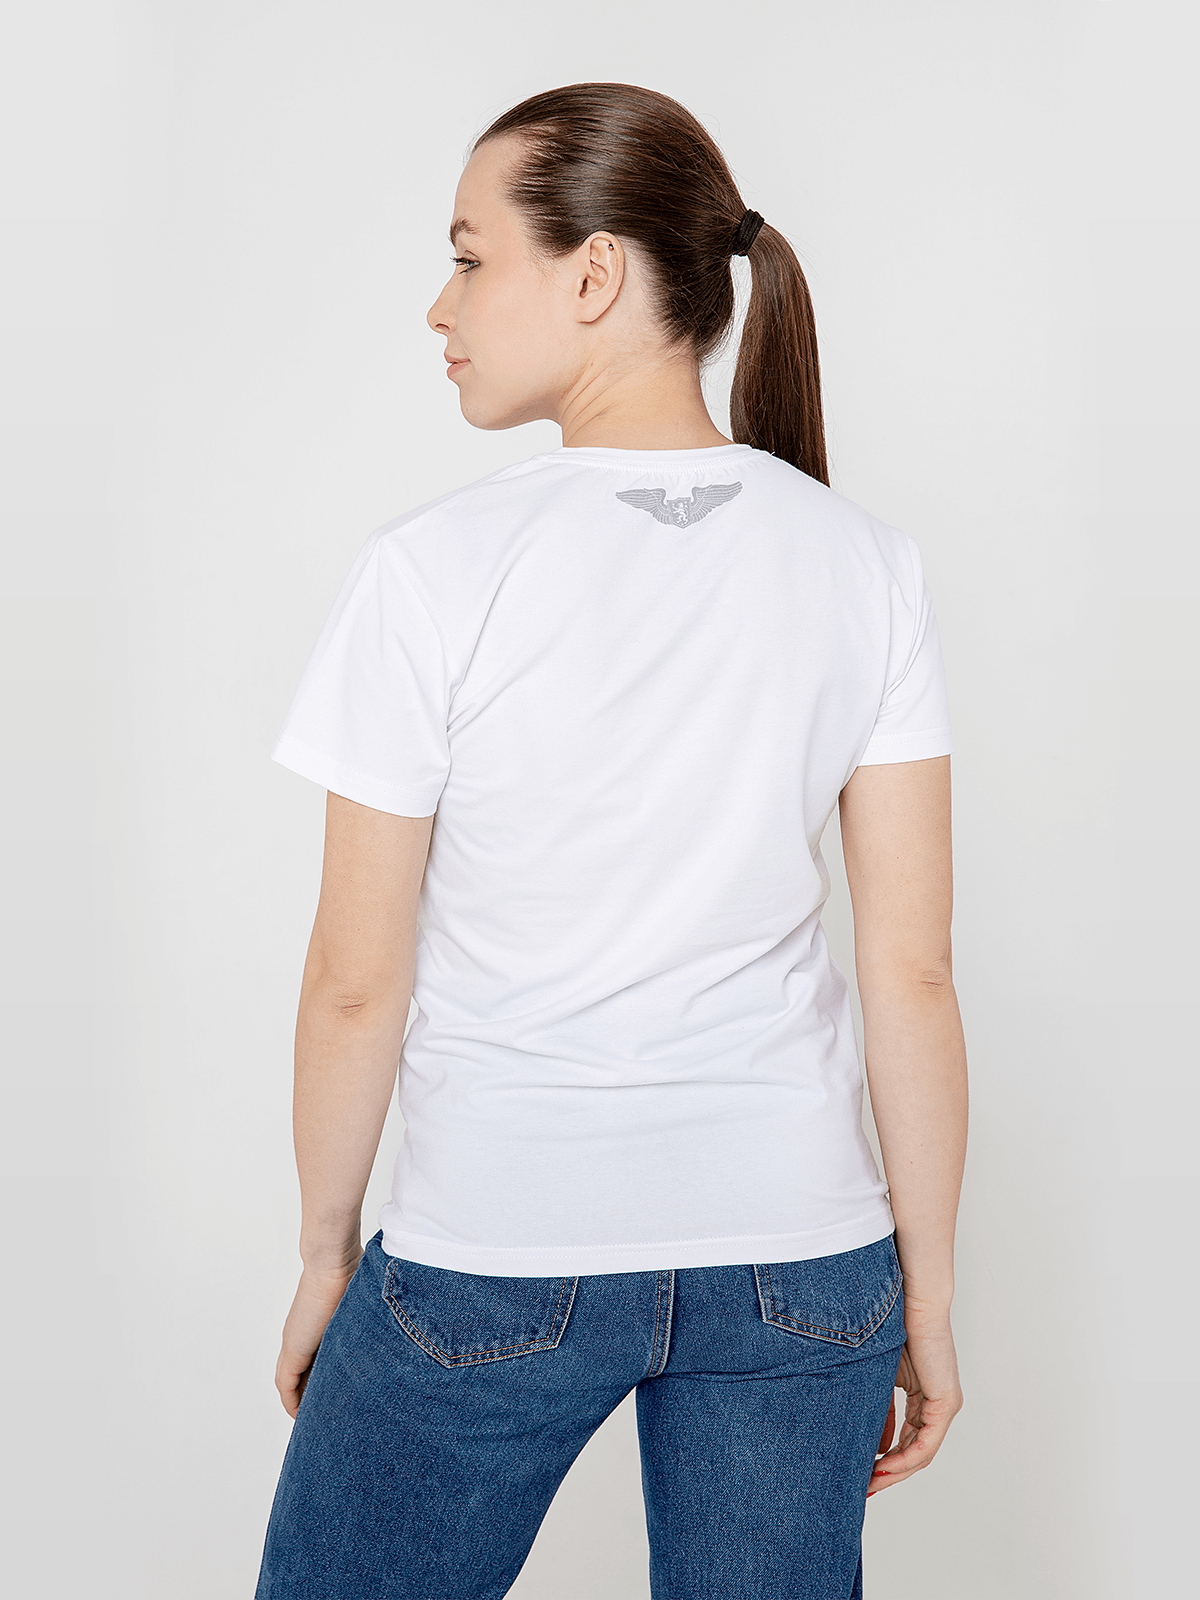 Women's T-Shirt An-225. Color white.  Don't worry about the universal size.